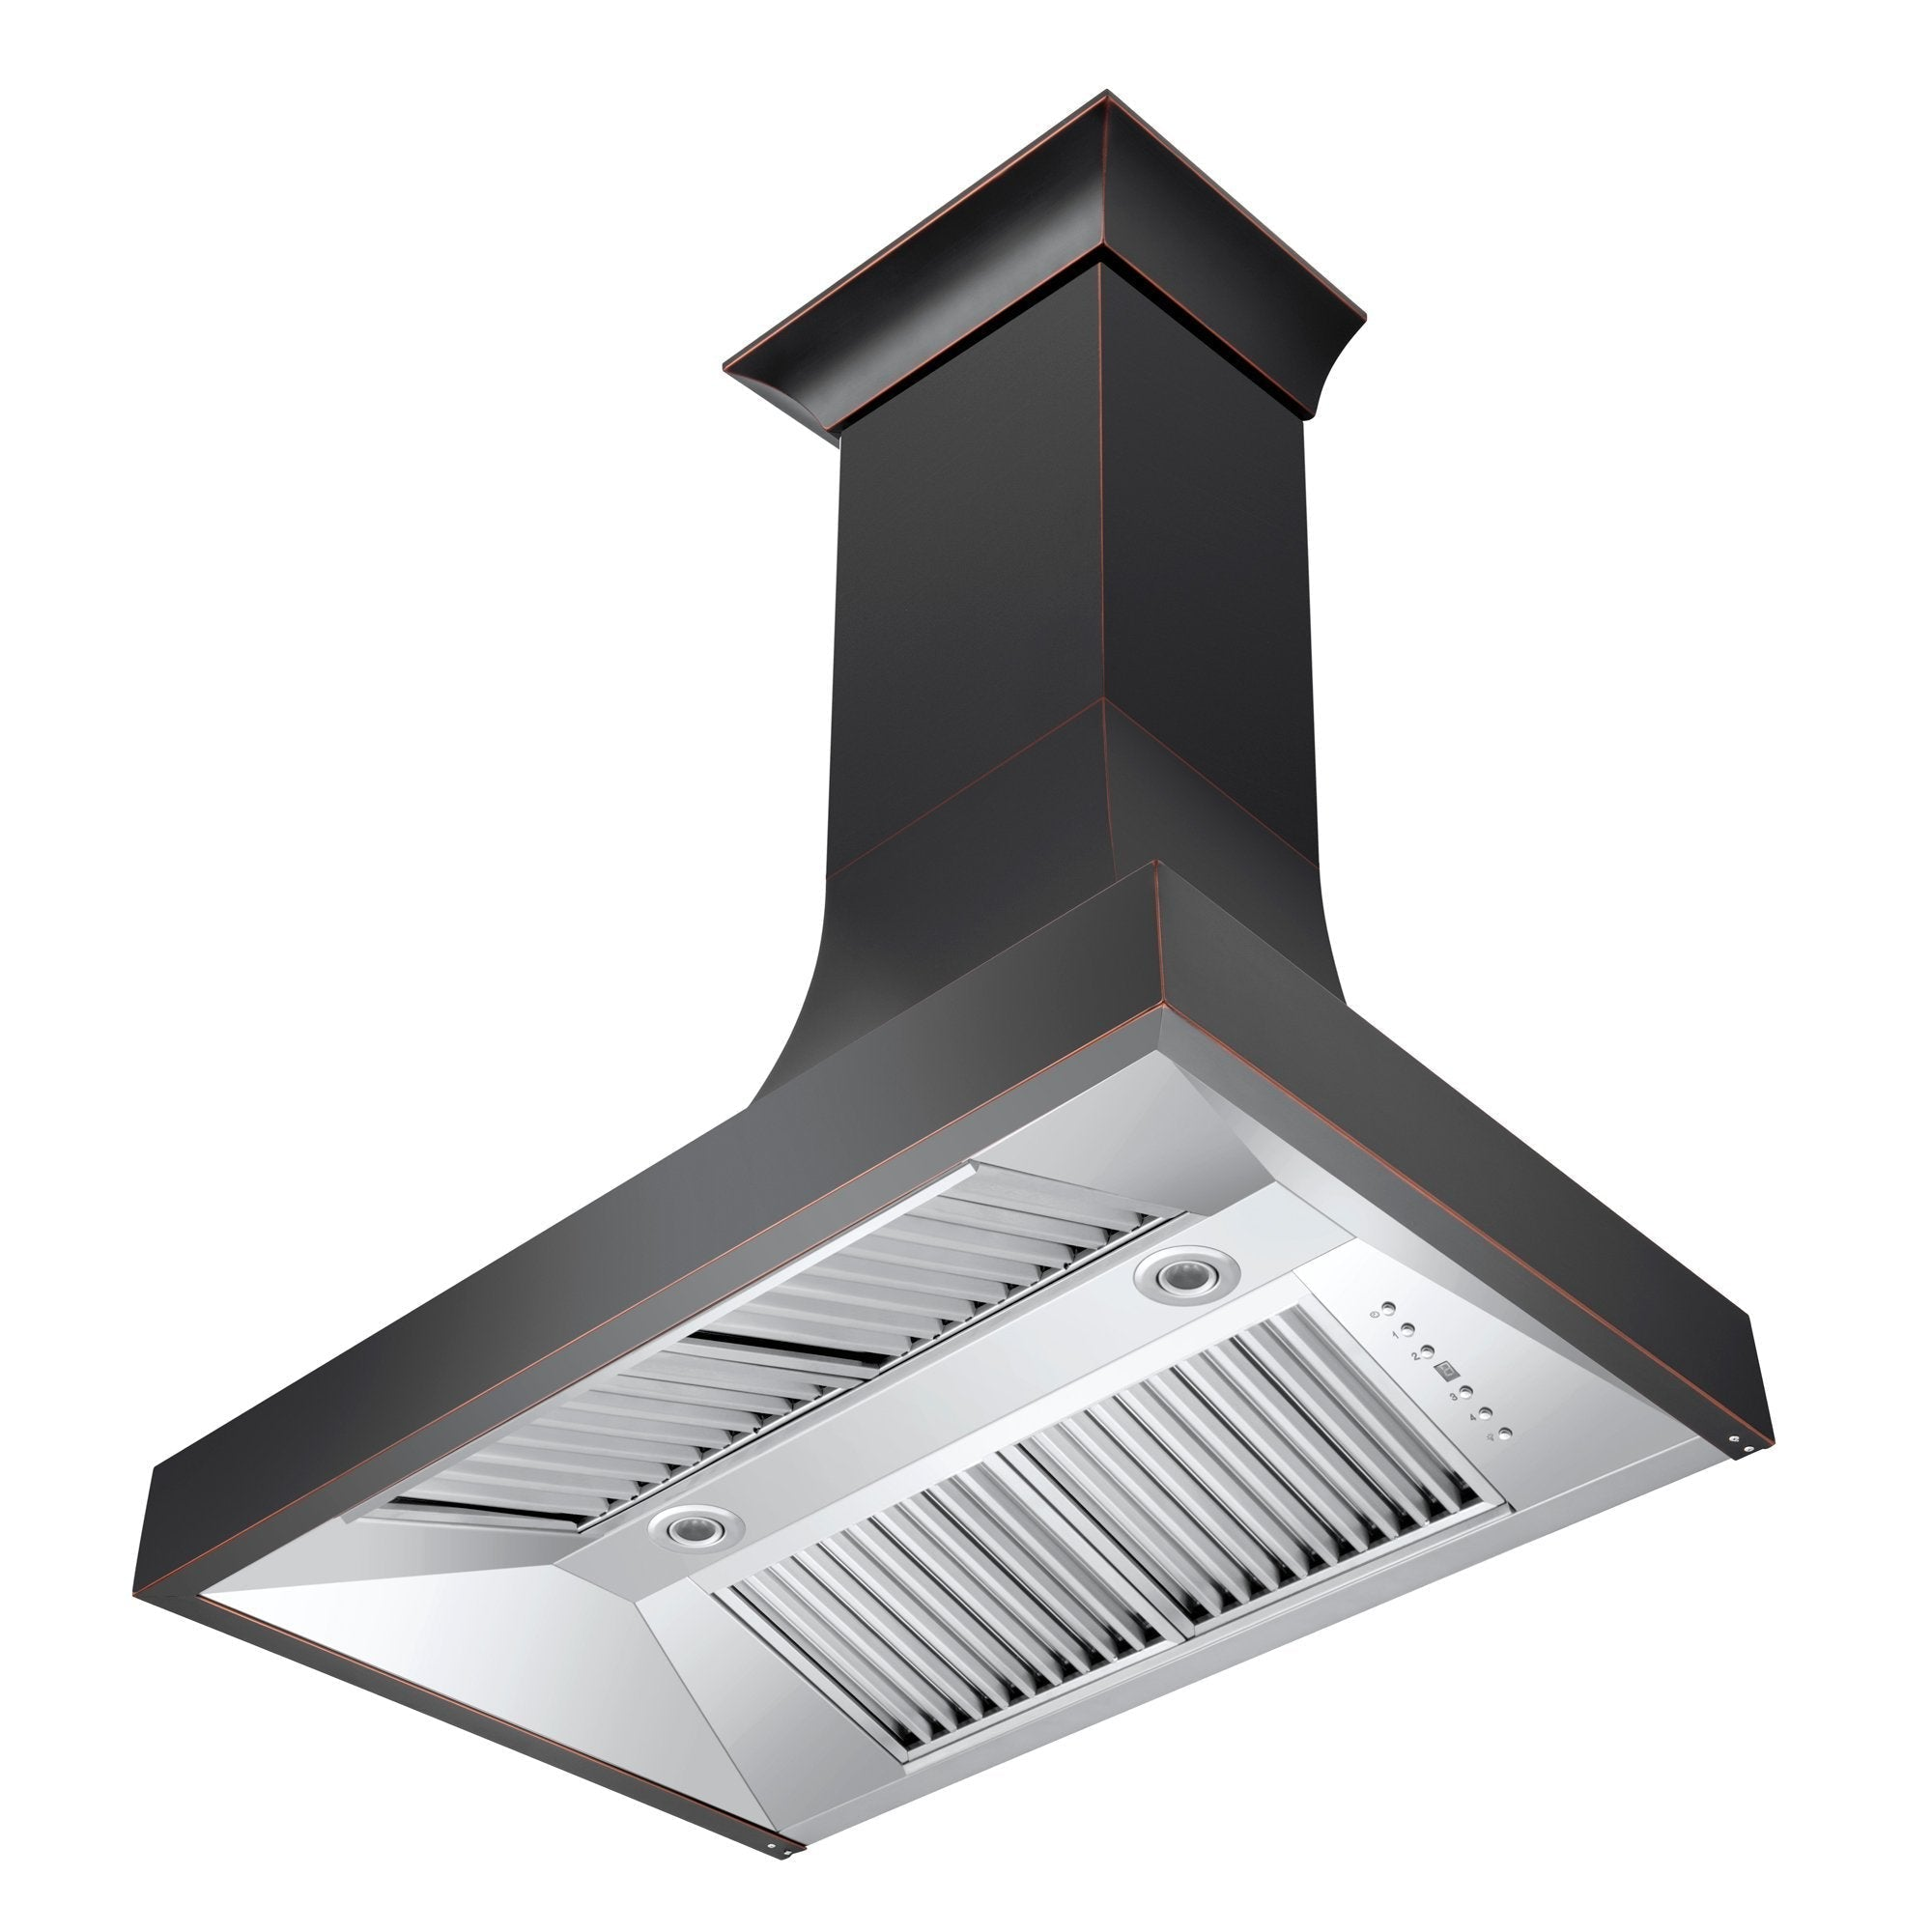 ZLINE Kitchen and Bath, ZLINE Designer Series Oil-Rubbed Bronze Wall Range Hood (8632B), 8632B-30,